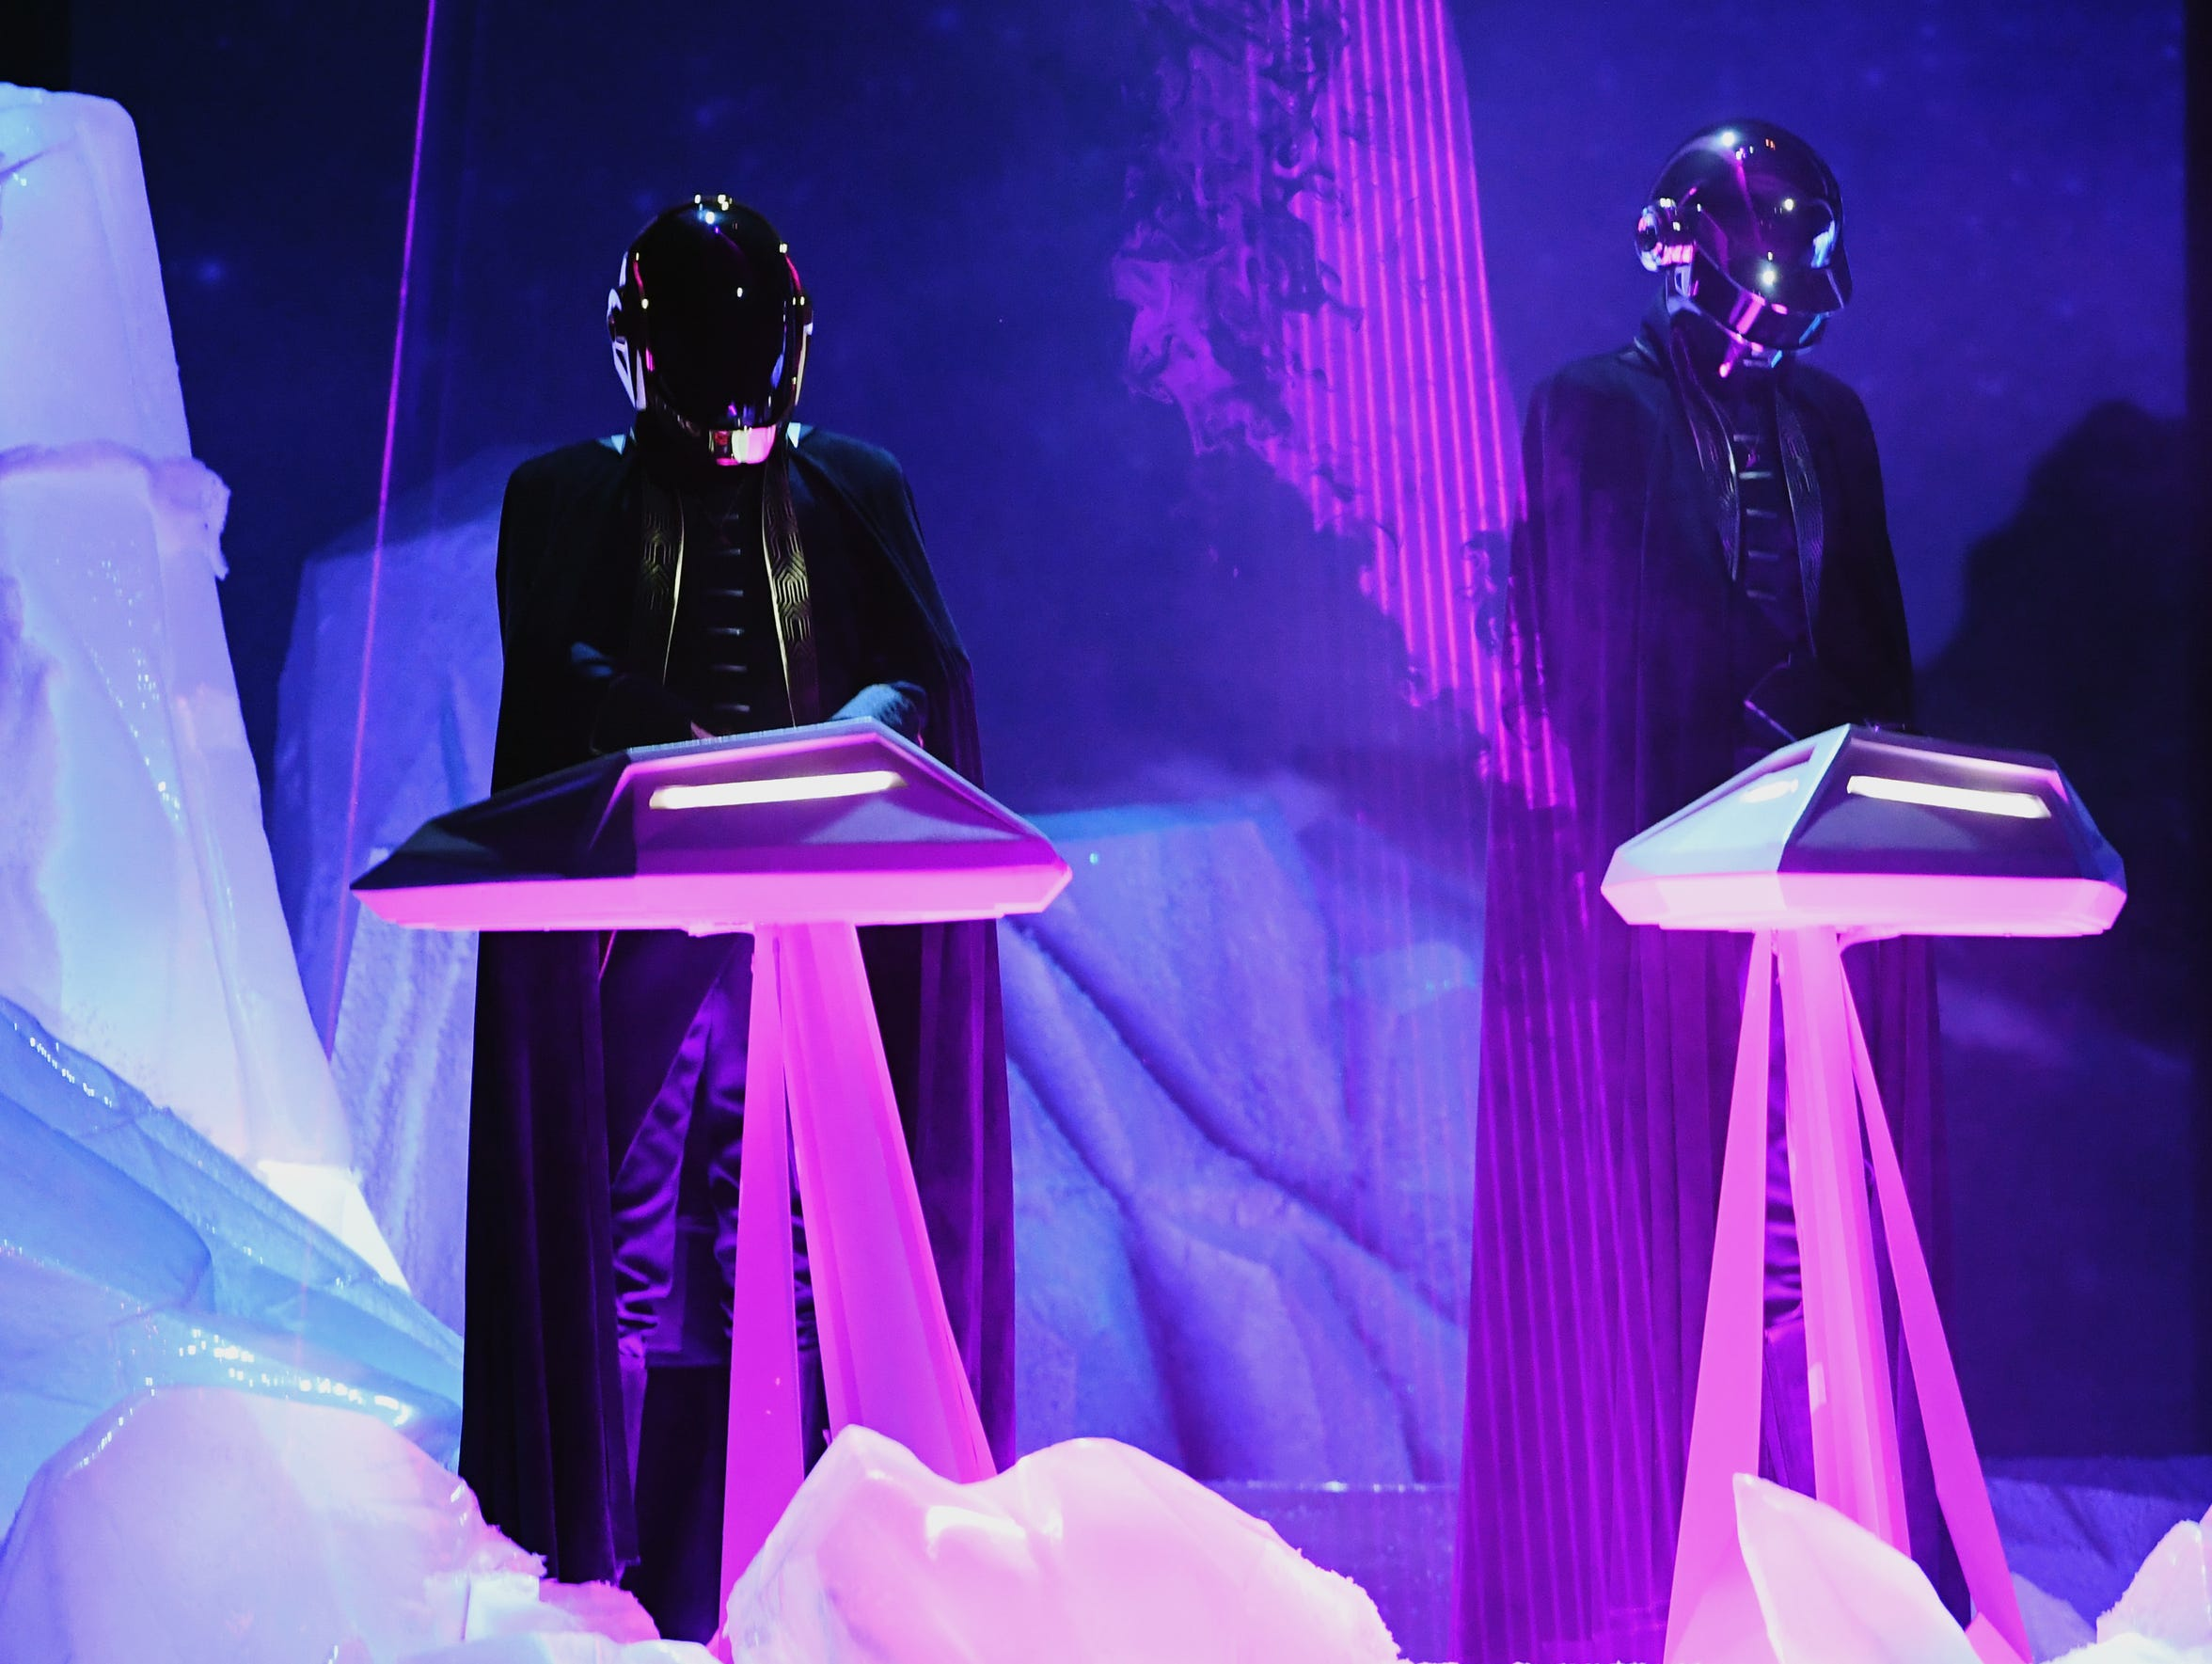 Music group Daft Punk performs onstage during The 59th